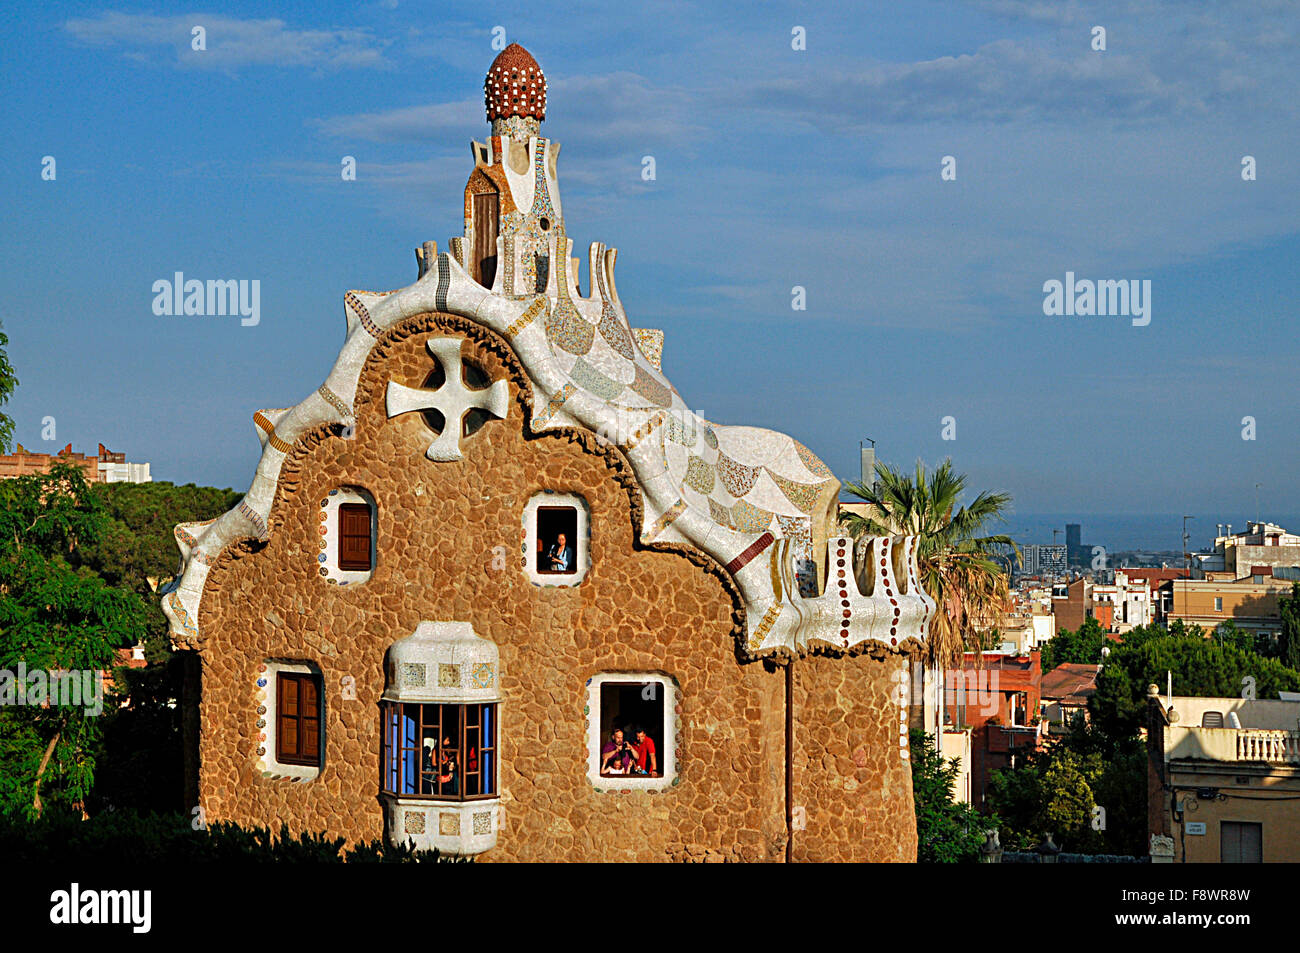 Gable of the Fairytale House, Park Güell, Barcelona, ​​Catalonia, Spain - Stock Image